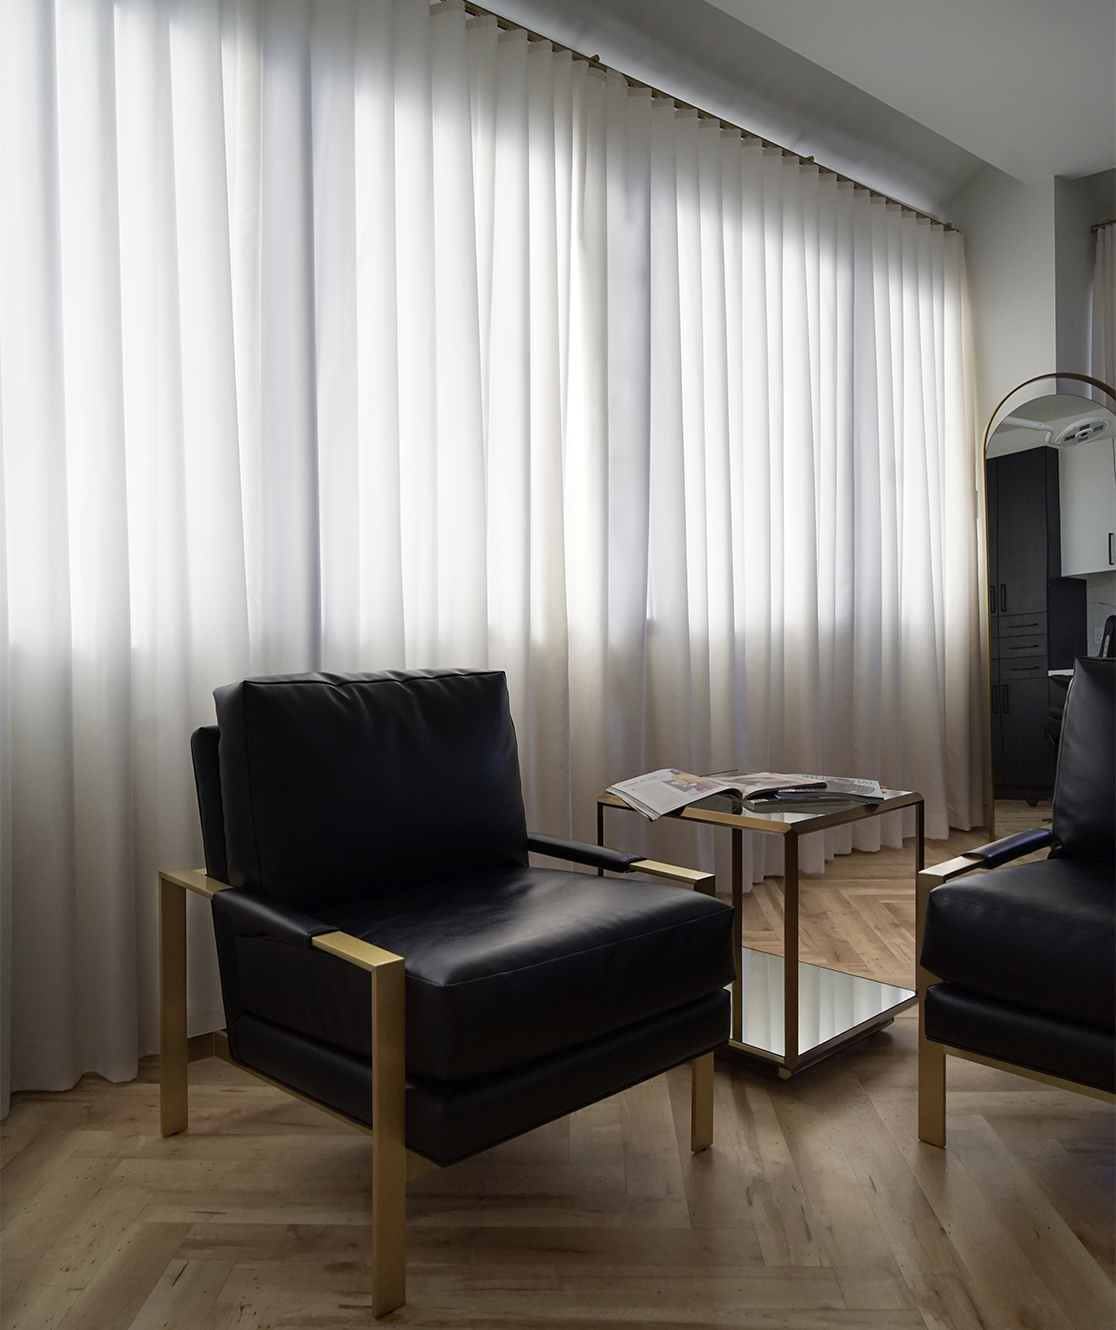 Sideview photo of model kneeling down looking at camera